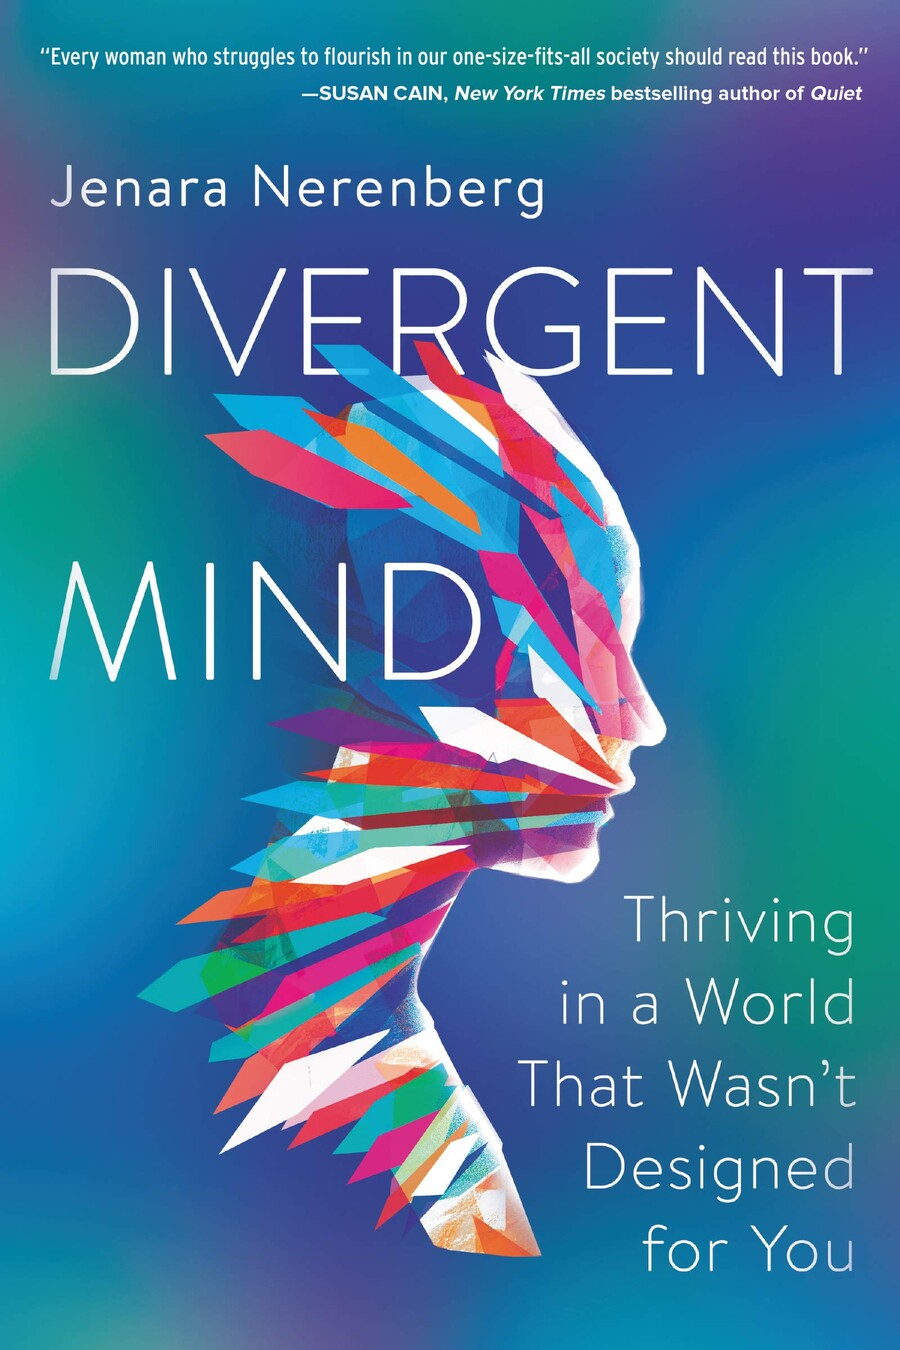 Divergent Mind, a blue book cover with an illustration of a person covered in shards of different shapes